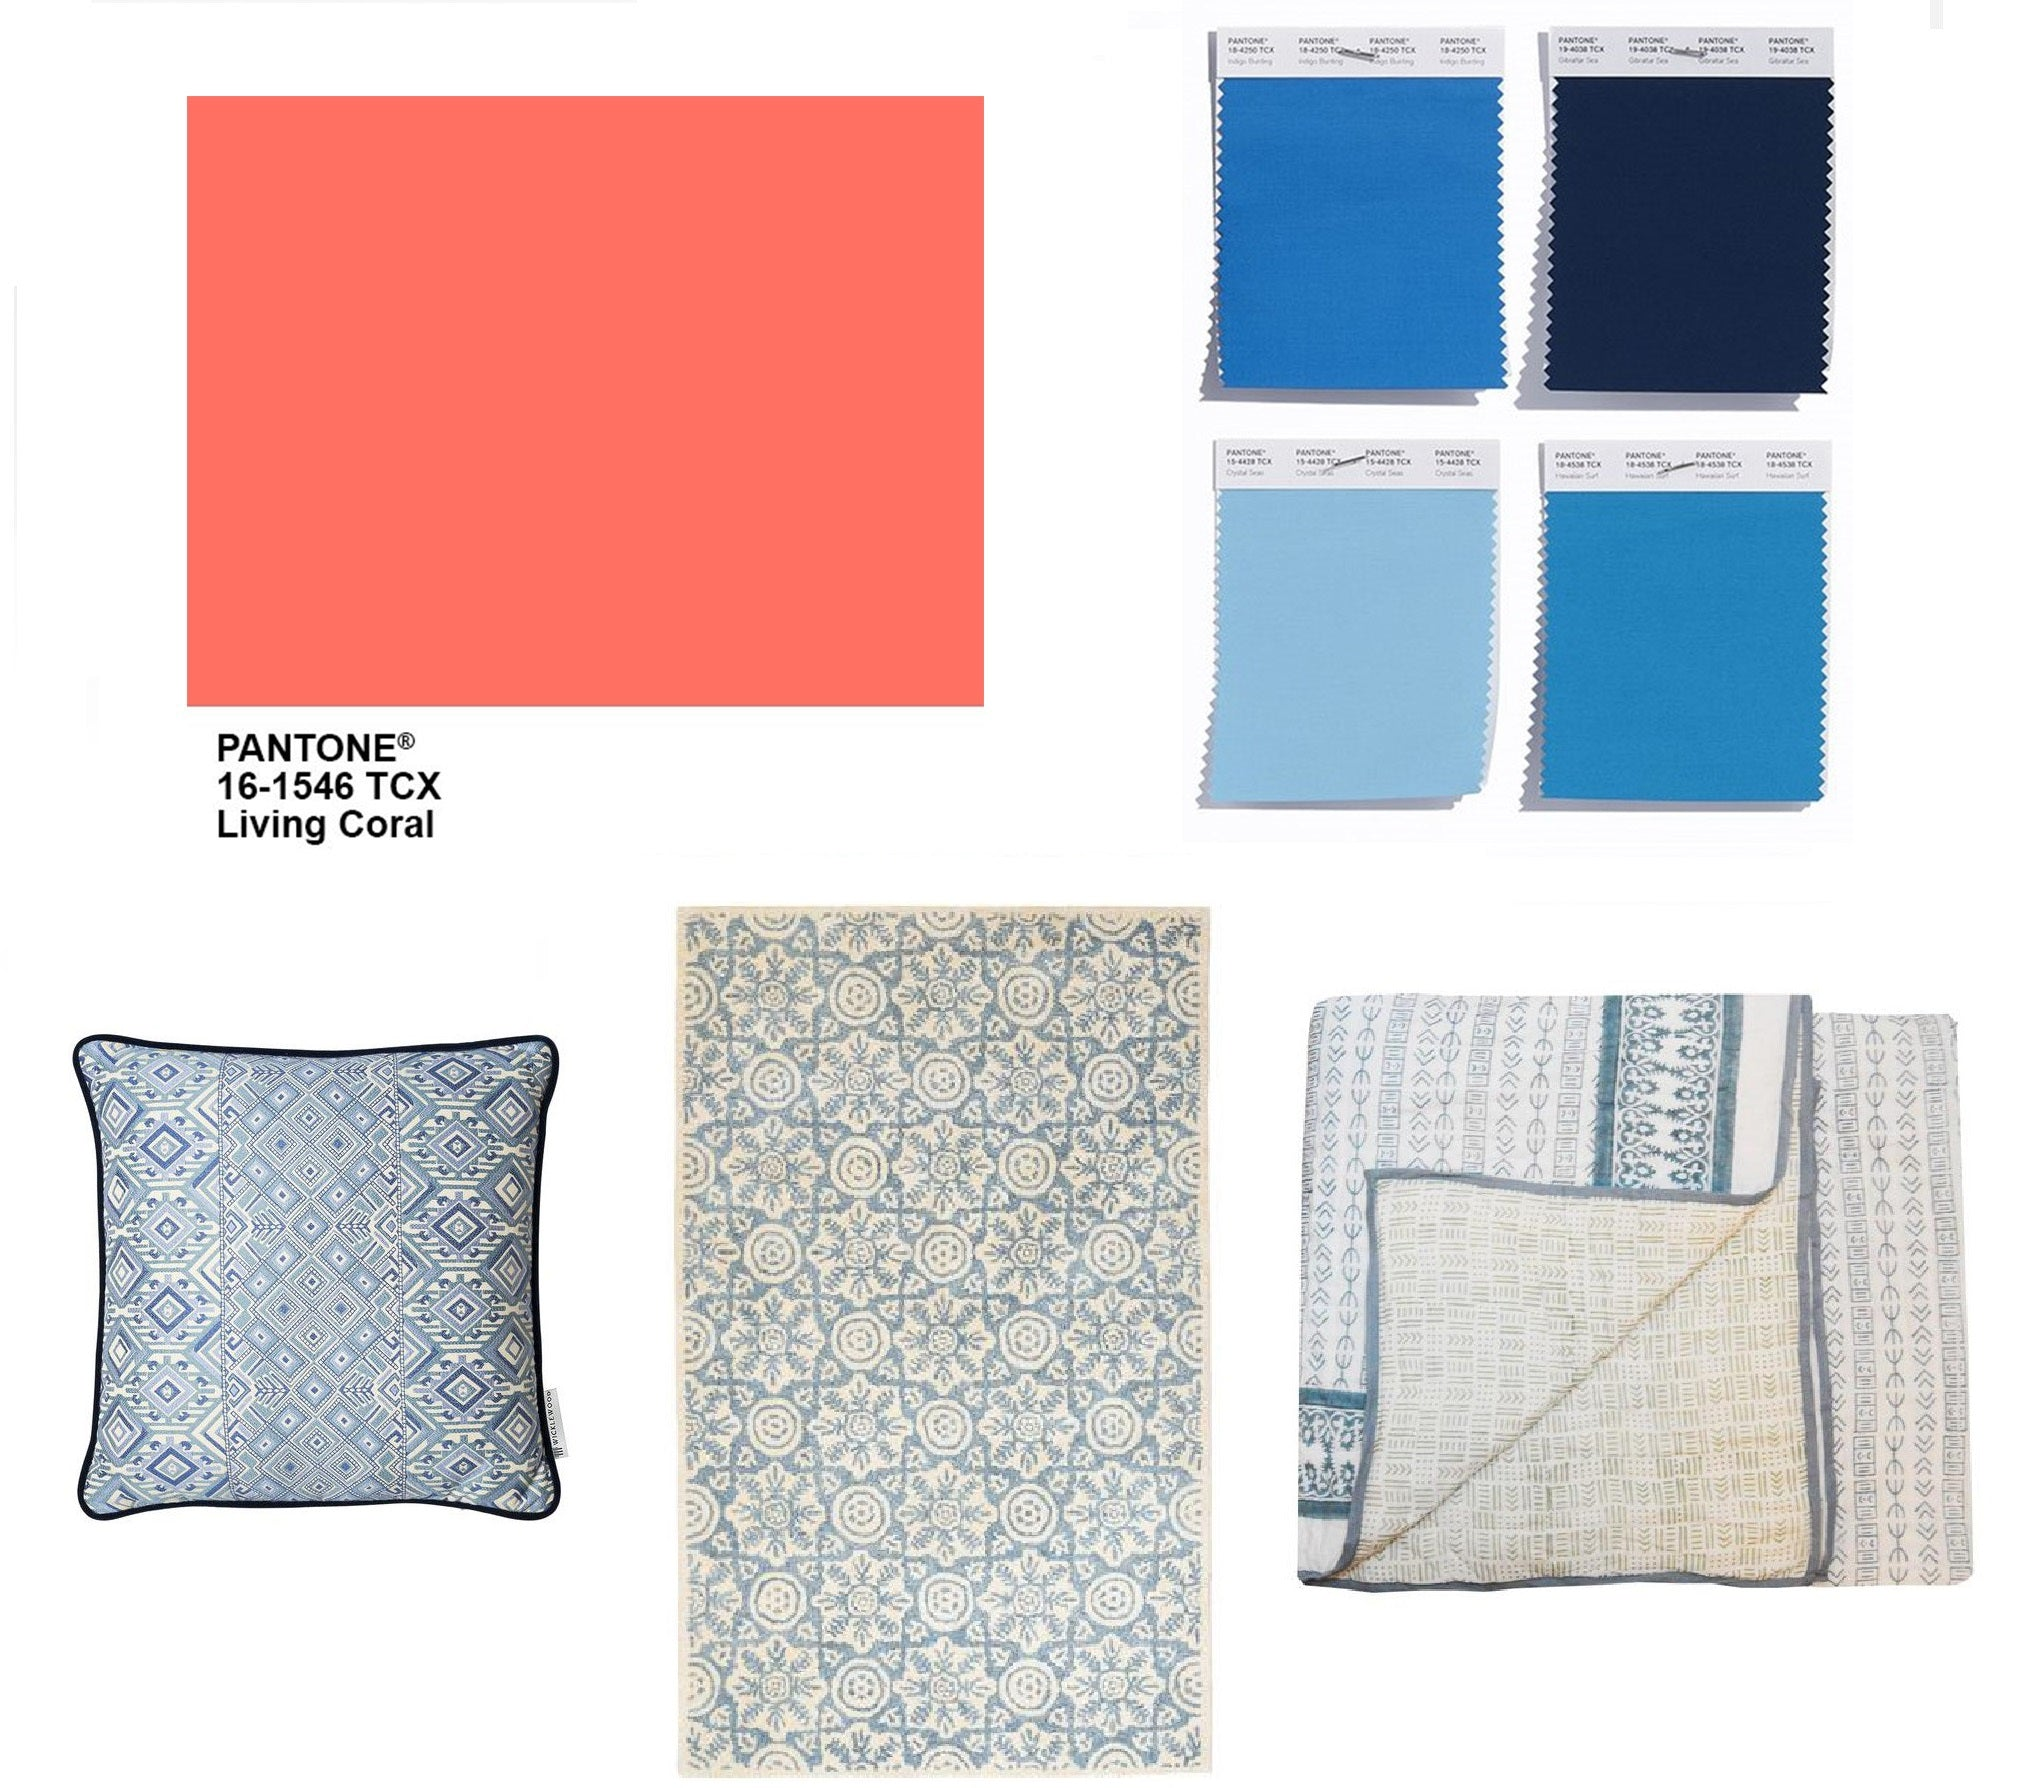 Pantone colour of the year, Living Coral, looks great combined with shades of blue. Bring this mix at home with our tree of life cushion, rossmore rug and reversible Indian quilt